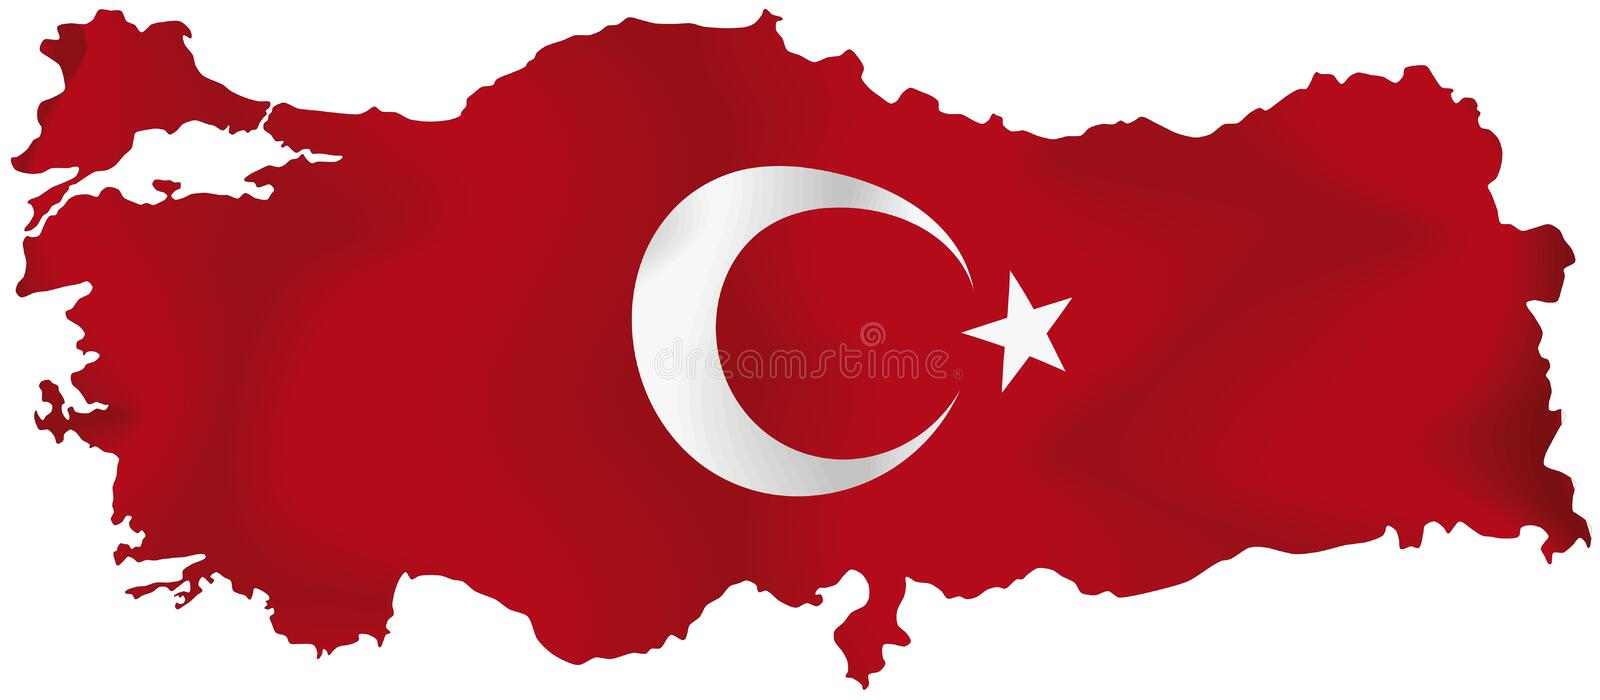 Turkey map with flag. Map of Turkey filled with its waving flag royalty free illustration